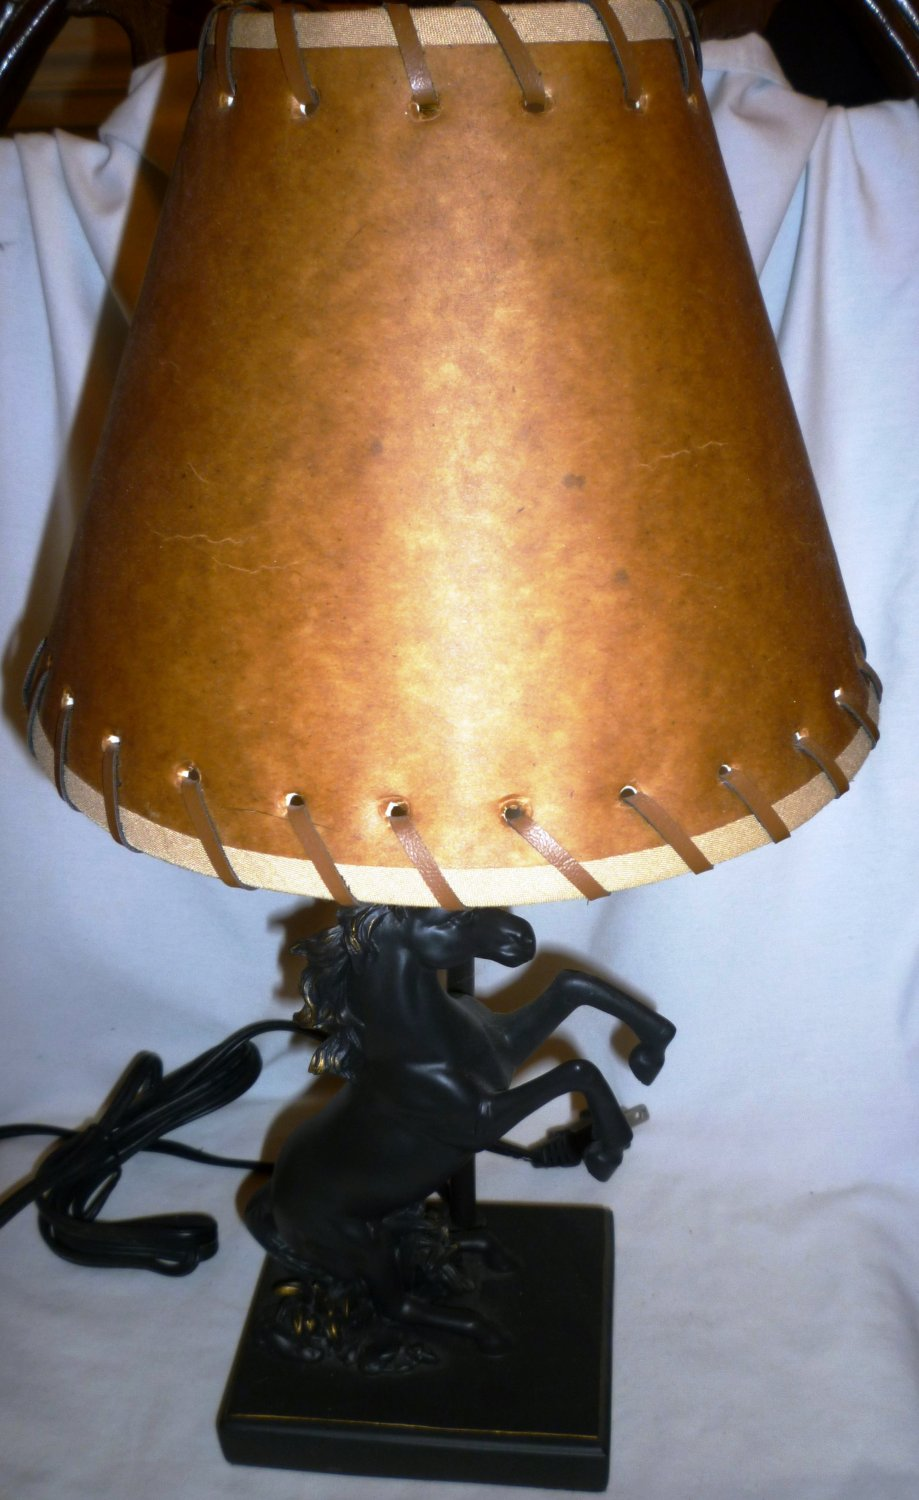 STNNING STALLION HORSE STATUE PORTABLE TABLE LAMP WESTERN SHADE